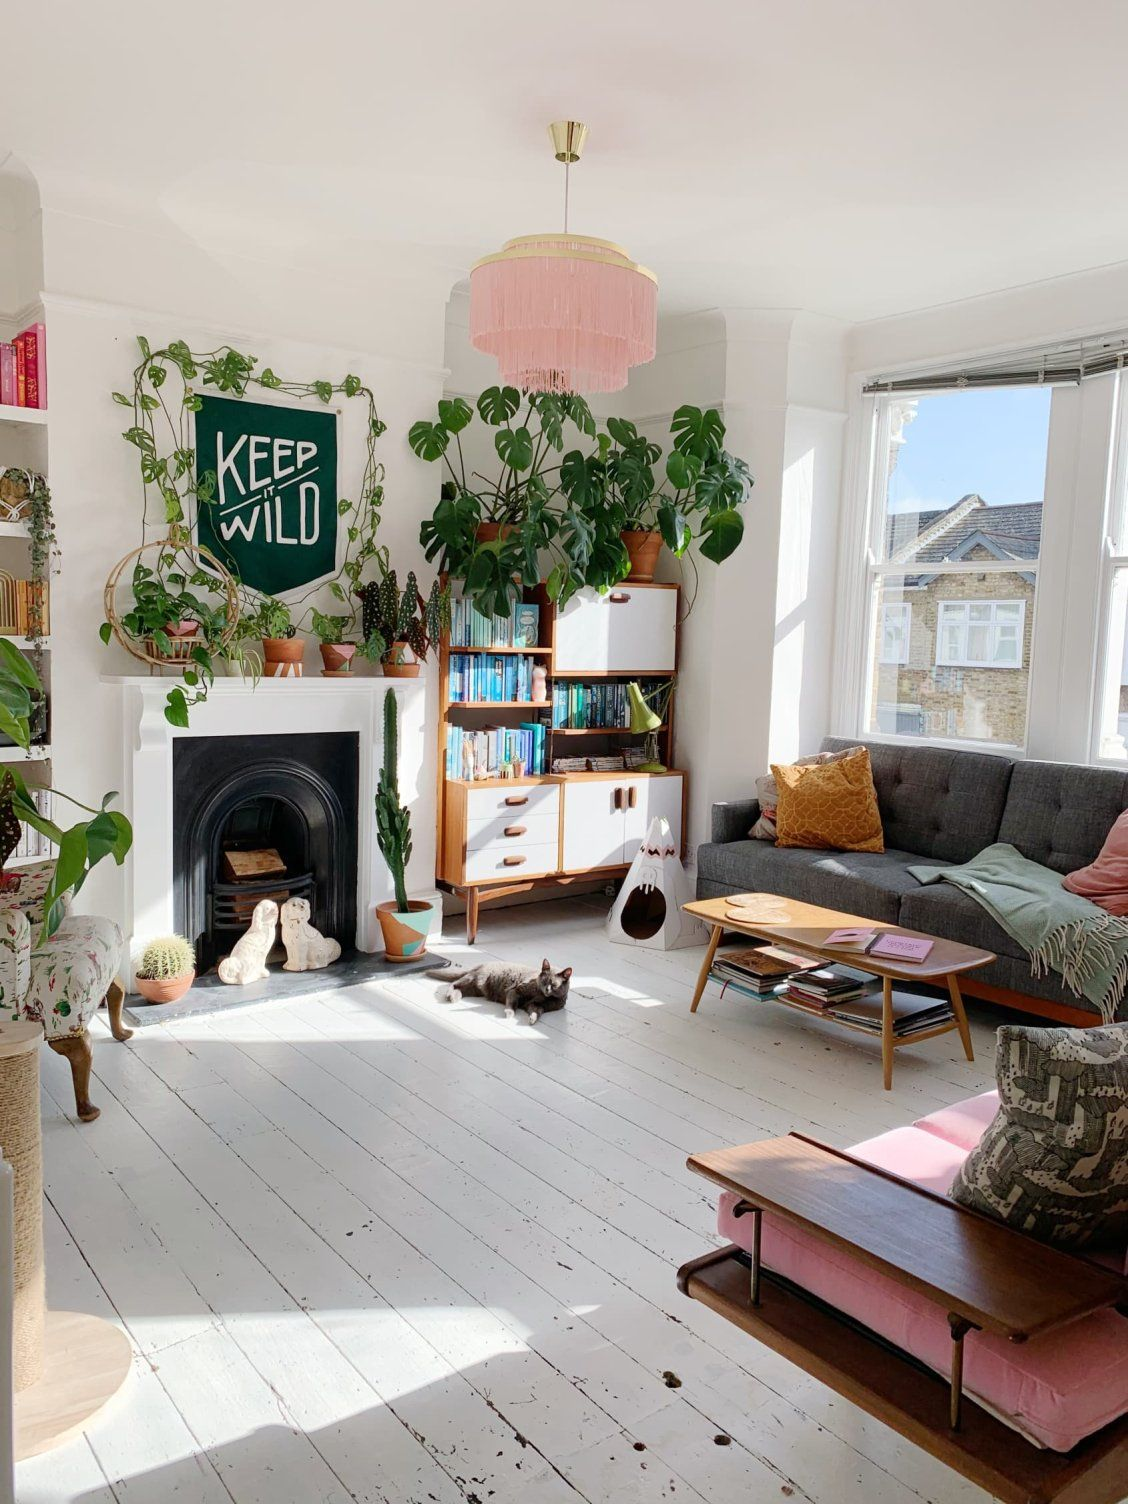 A Renovated London Flat Is Full Of Light Plants And A Playful Spirit In 2020 Living Room Office Space Eclectic Decor Vintage Home Decor